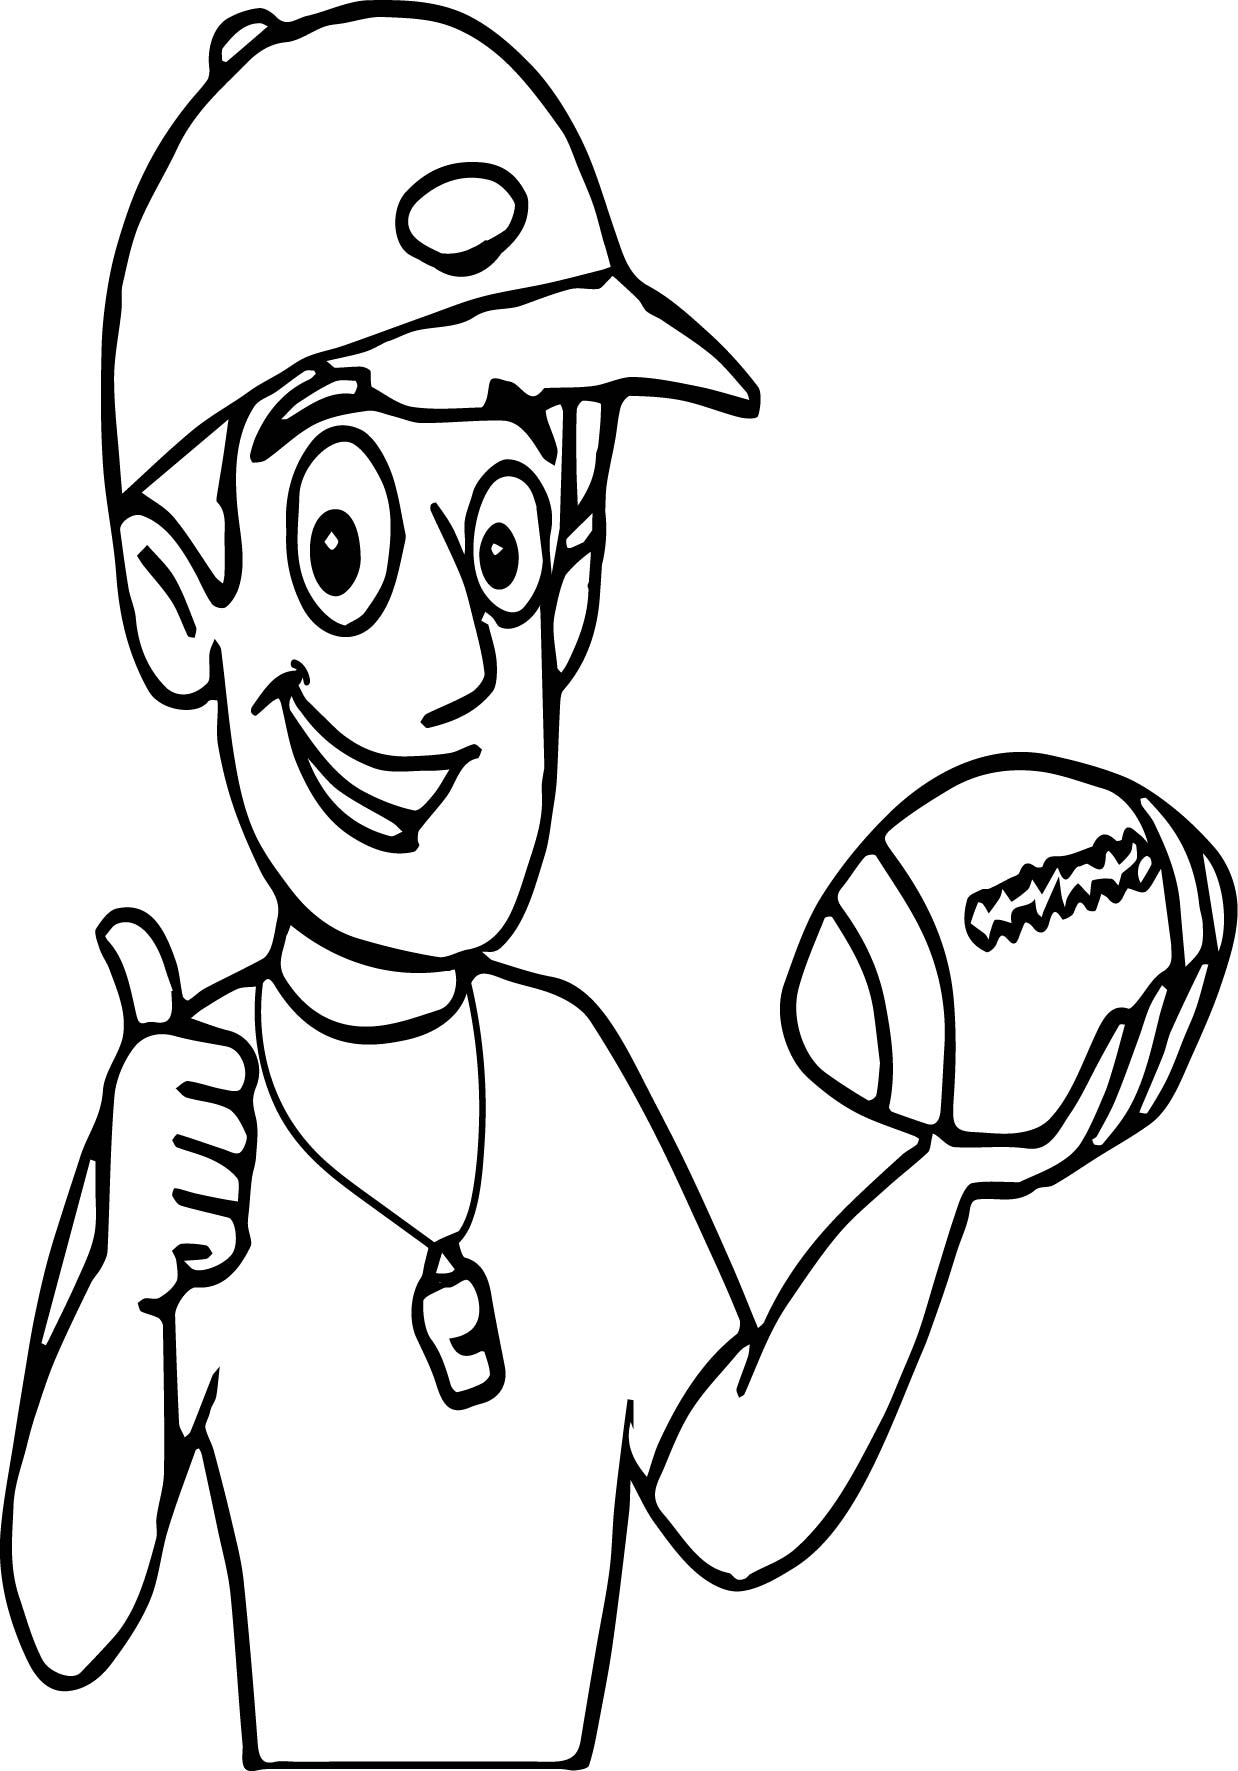 Coaches Whistle Coloring Pages Coloring Coloring Pages